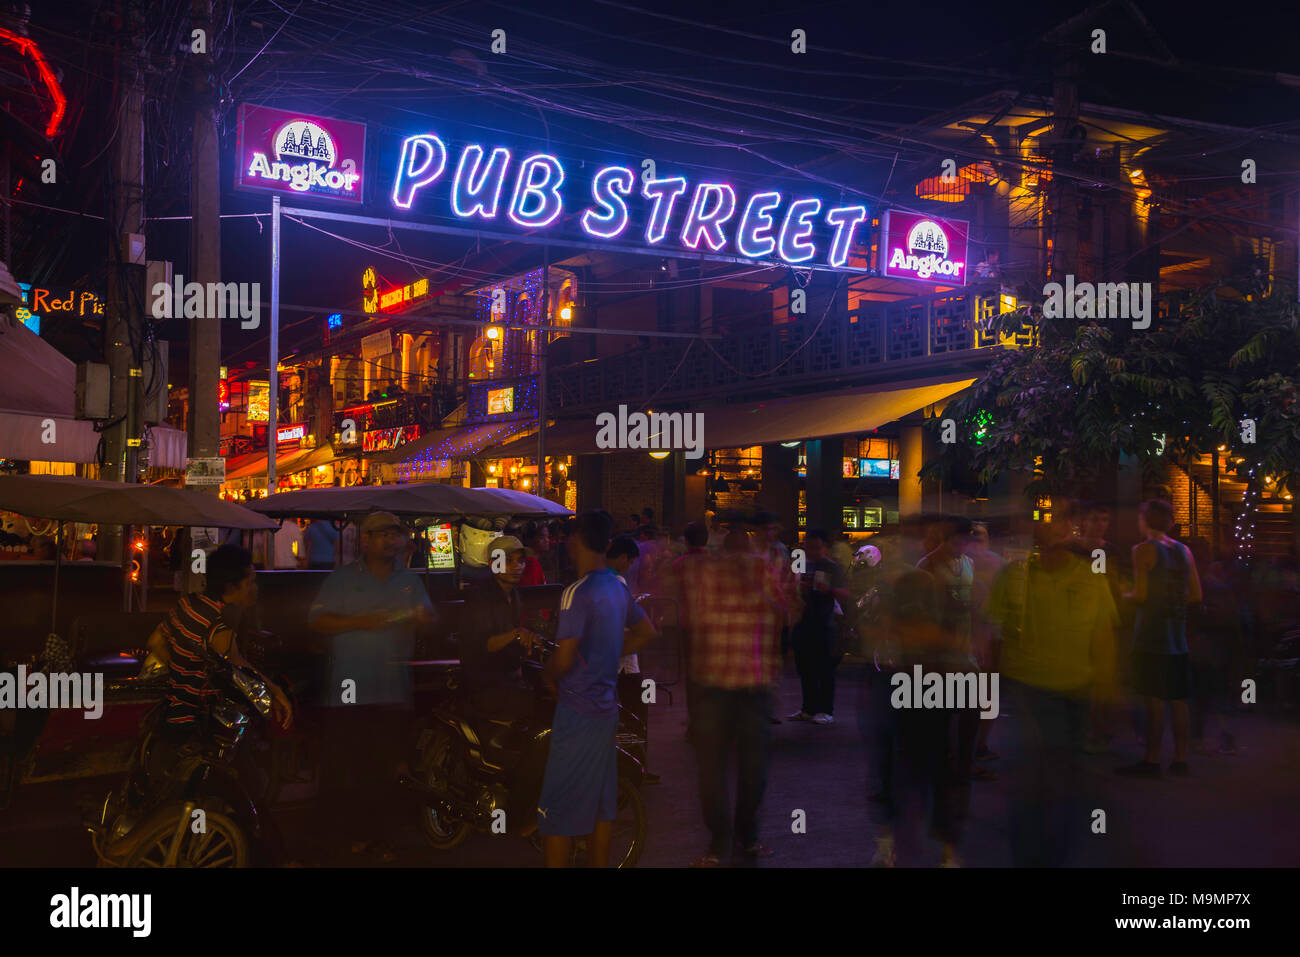 Neon lights, lettering Nightmarket, Pub Street by night, Nightlife, Siem Reap, Angkor, Cambodia - Stock Image